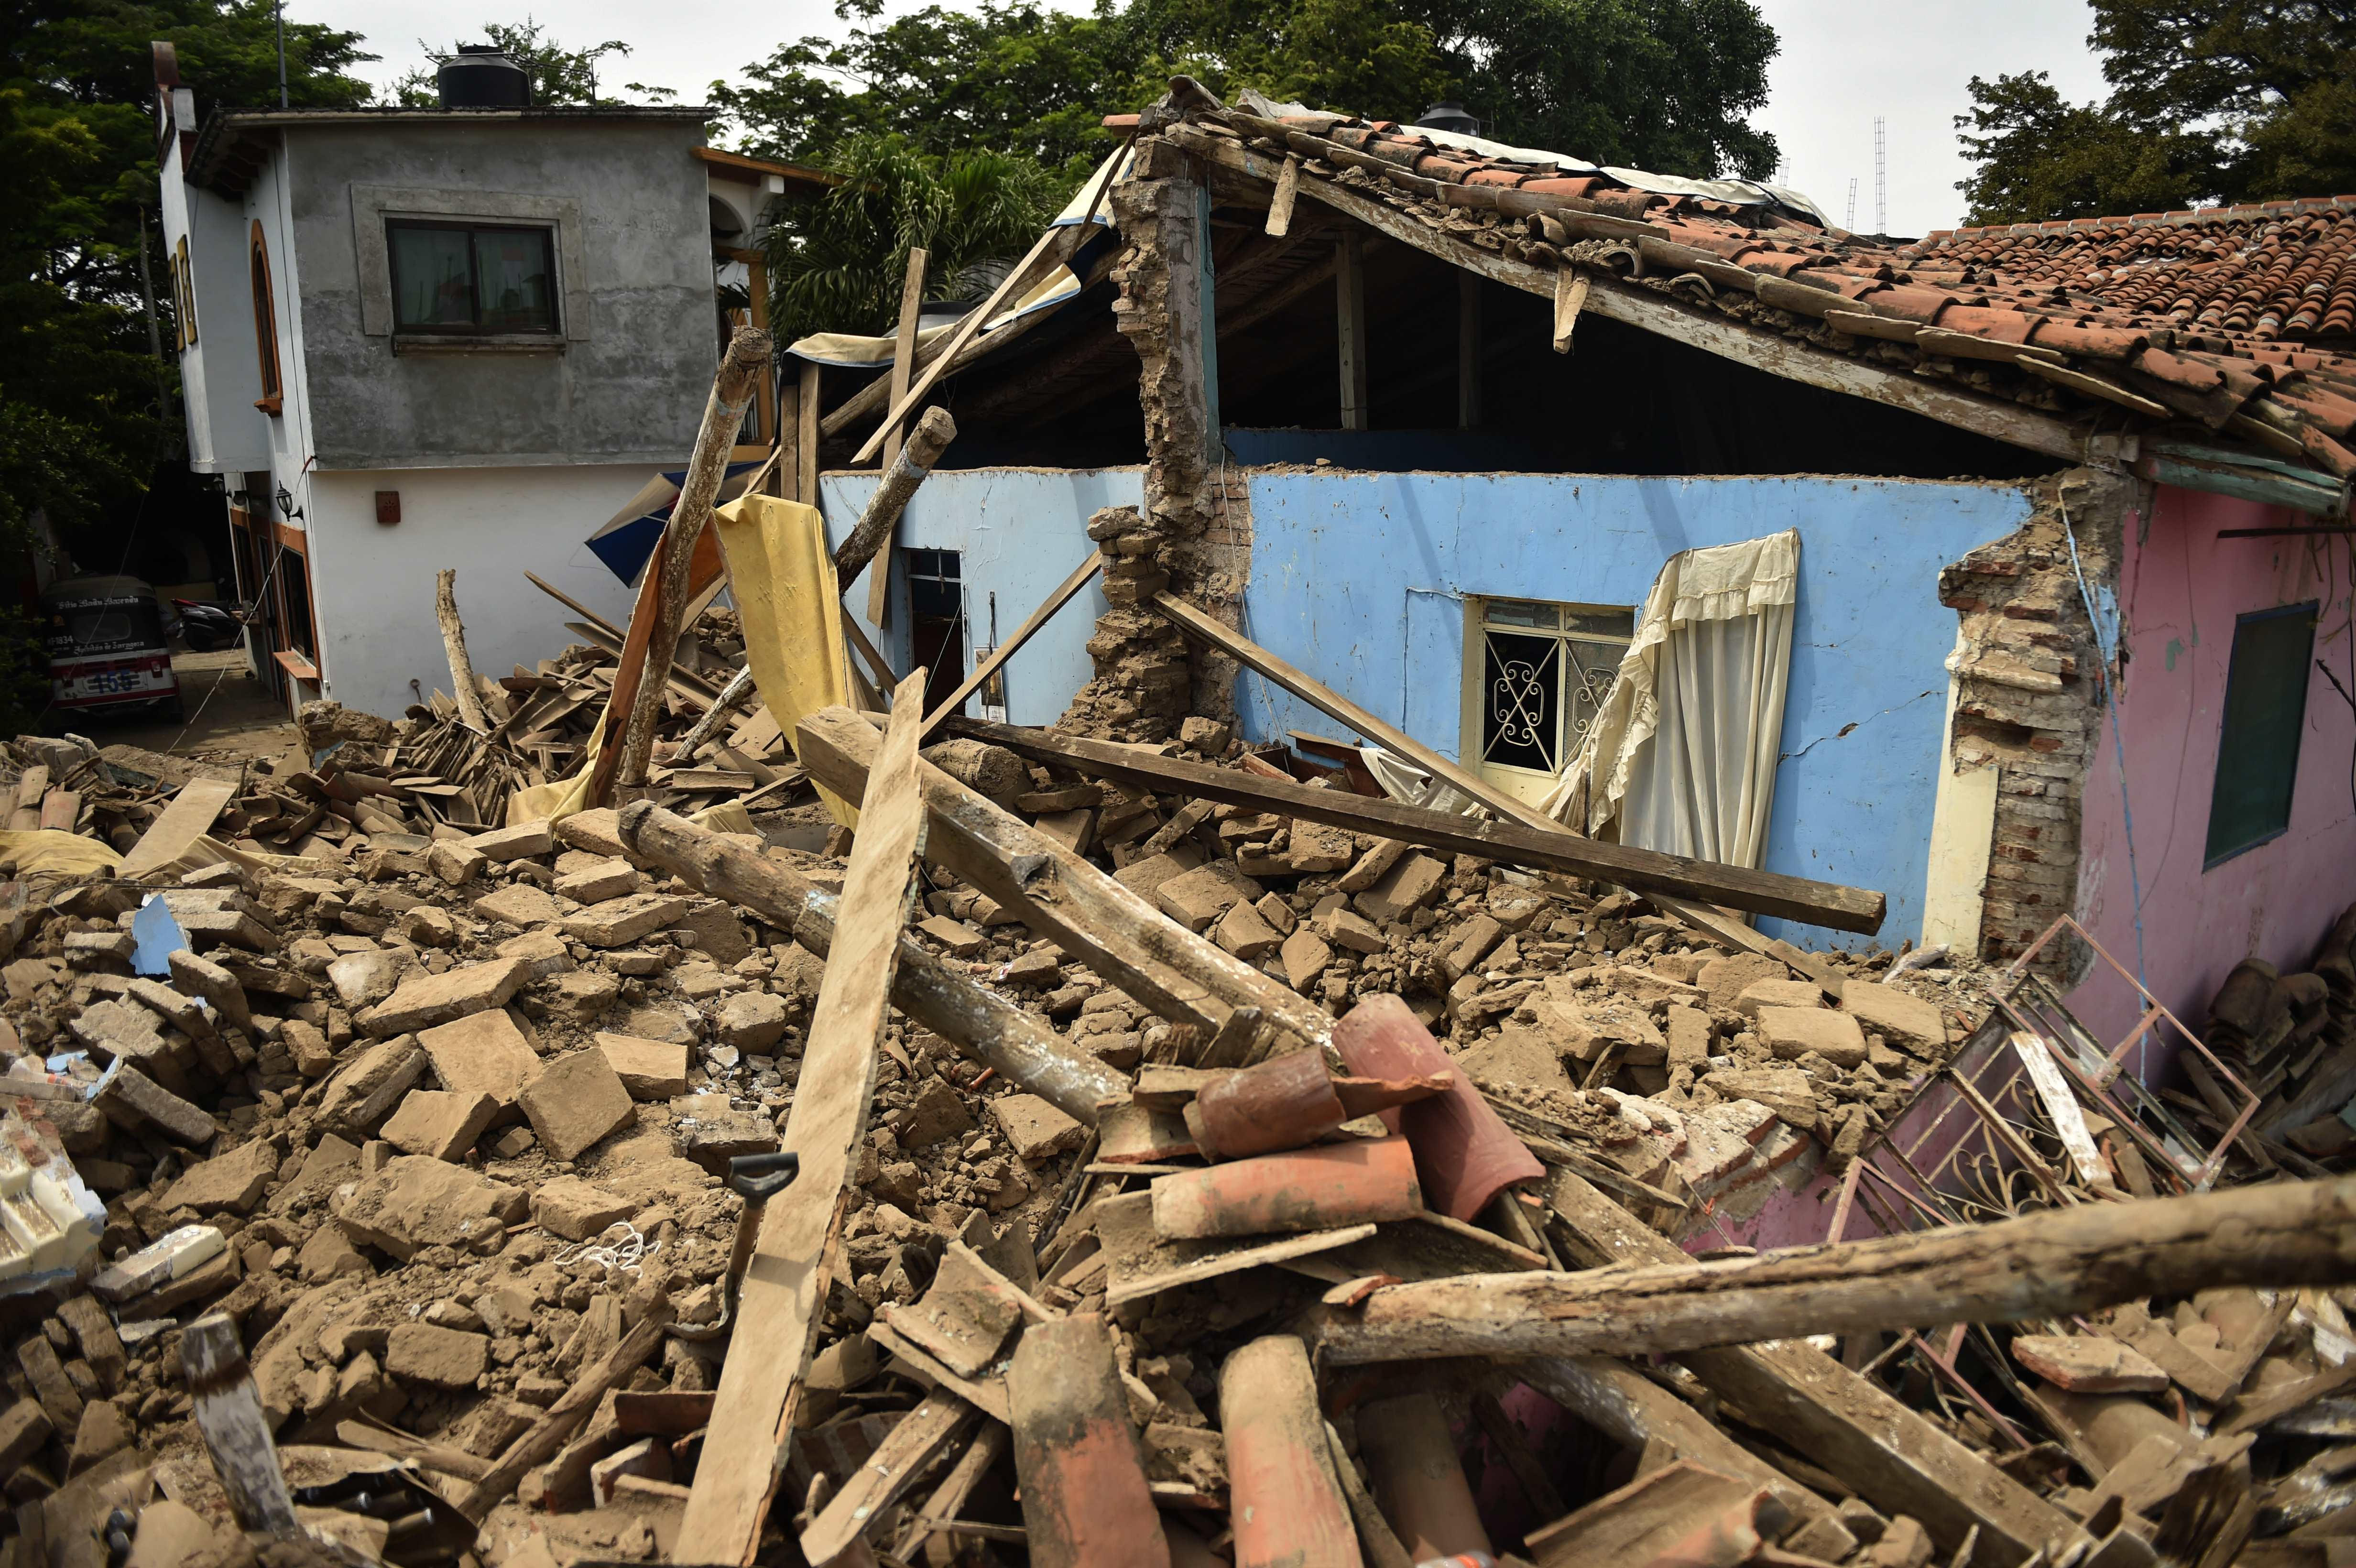 Juchitan de Zaragoza, state of Oaxaca, where buildings collapsed after an 8.1 earthquake\ hit Mexico's Pacific coast.